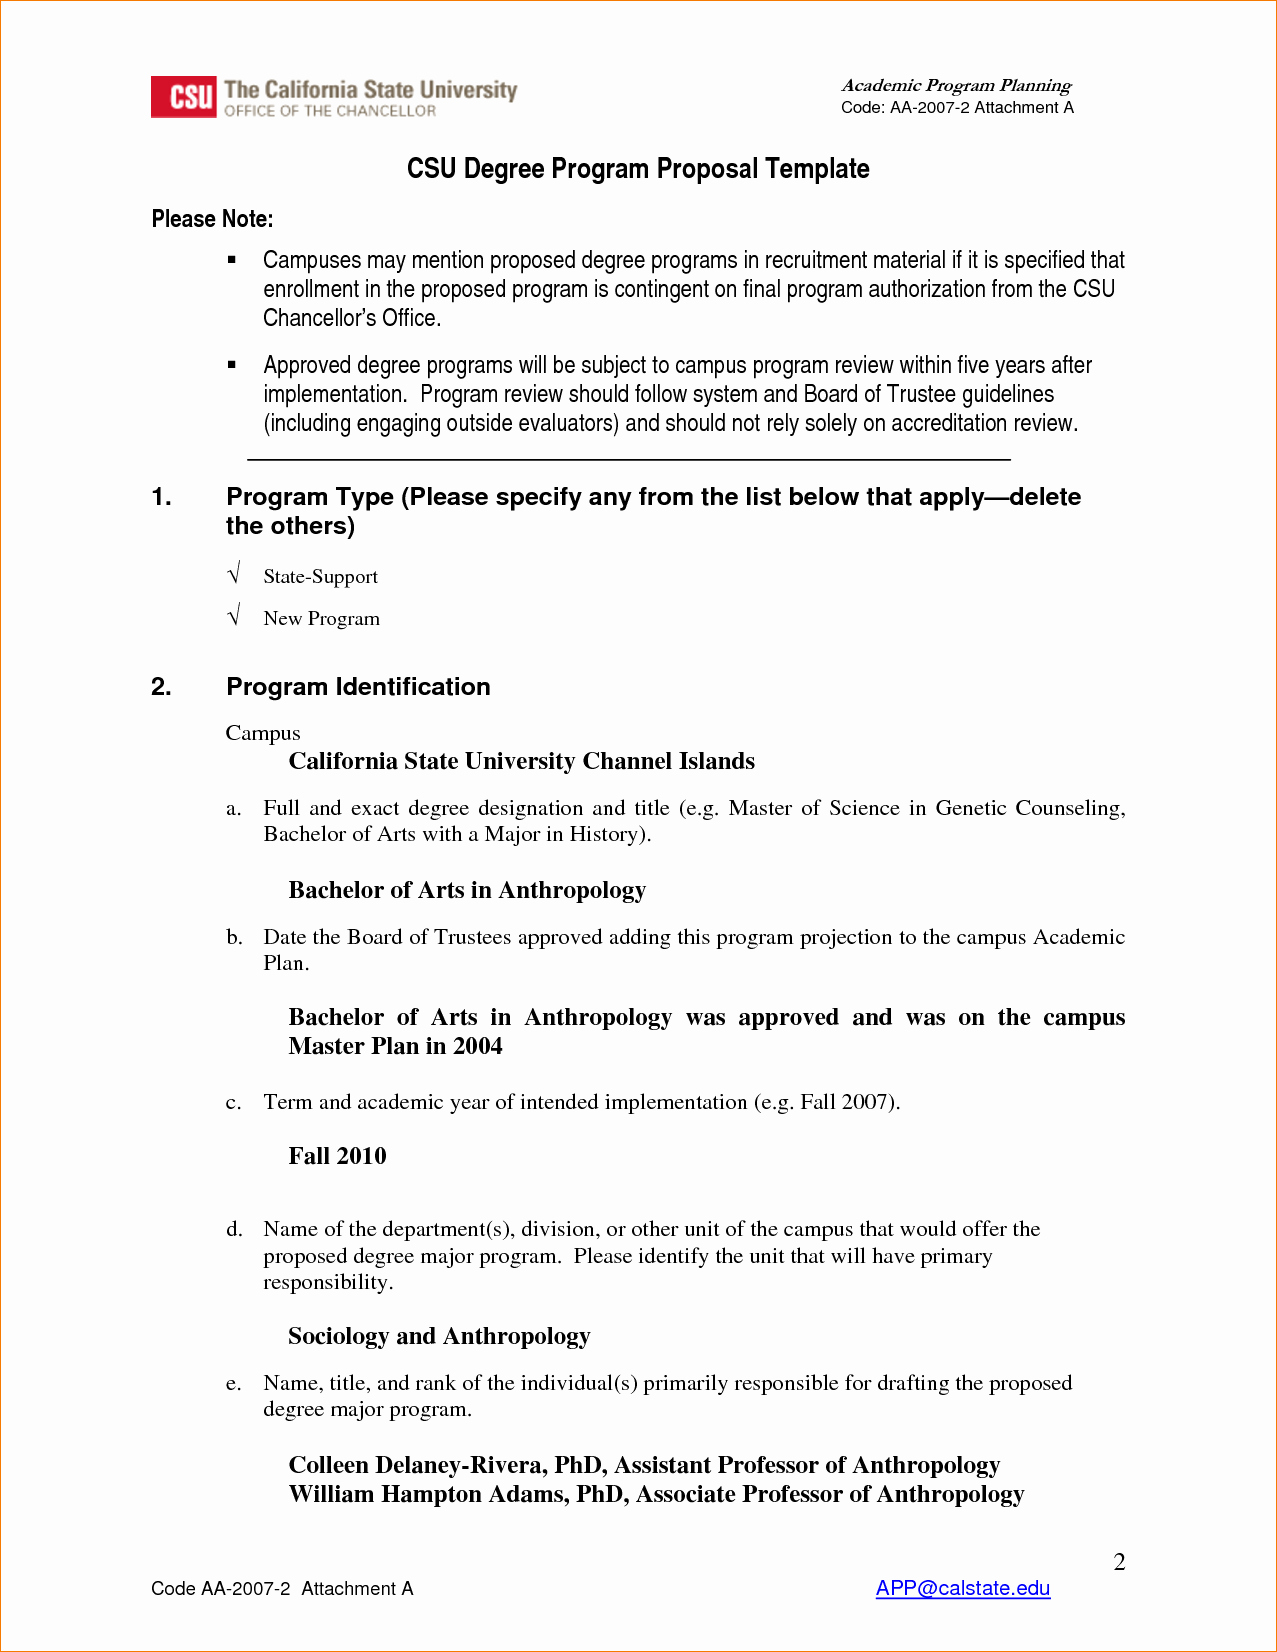 Proposal Program Proposal Template